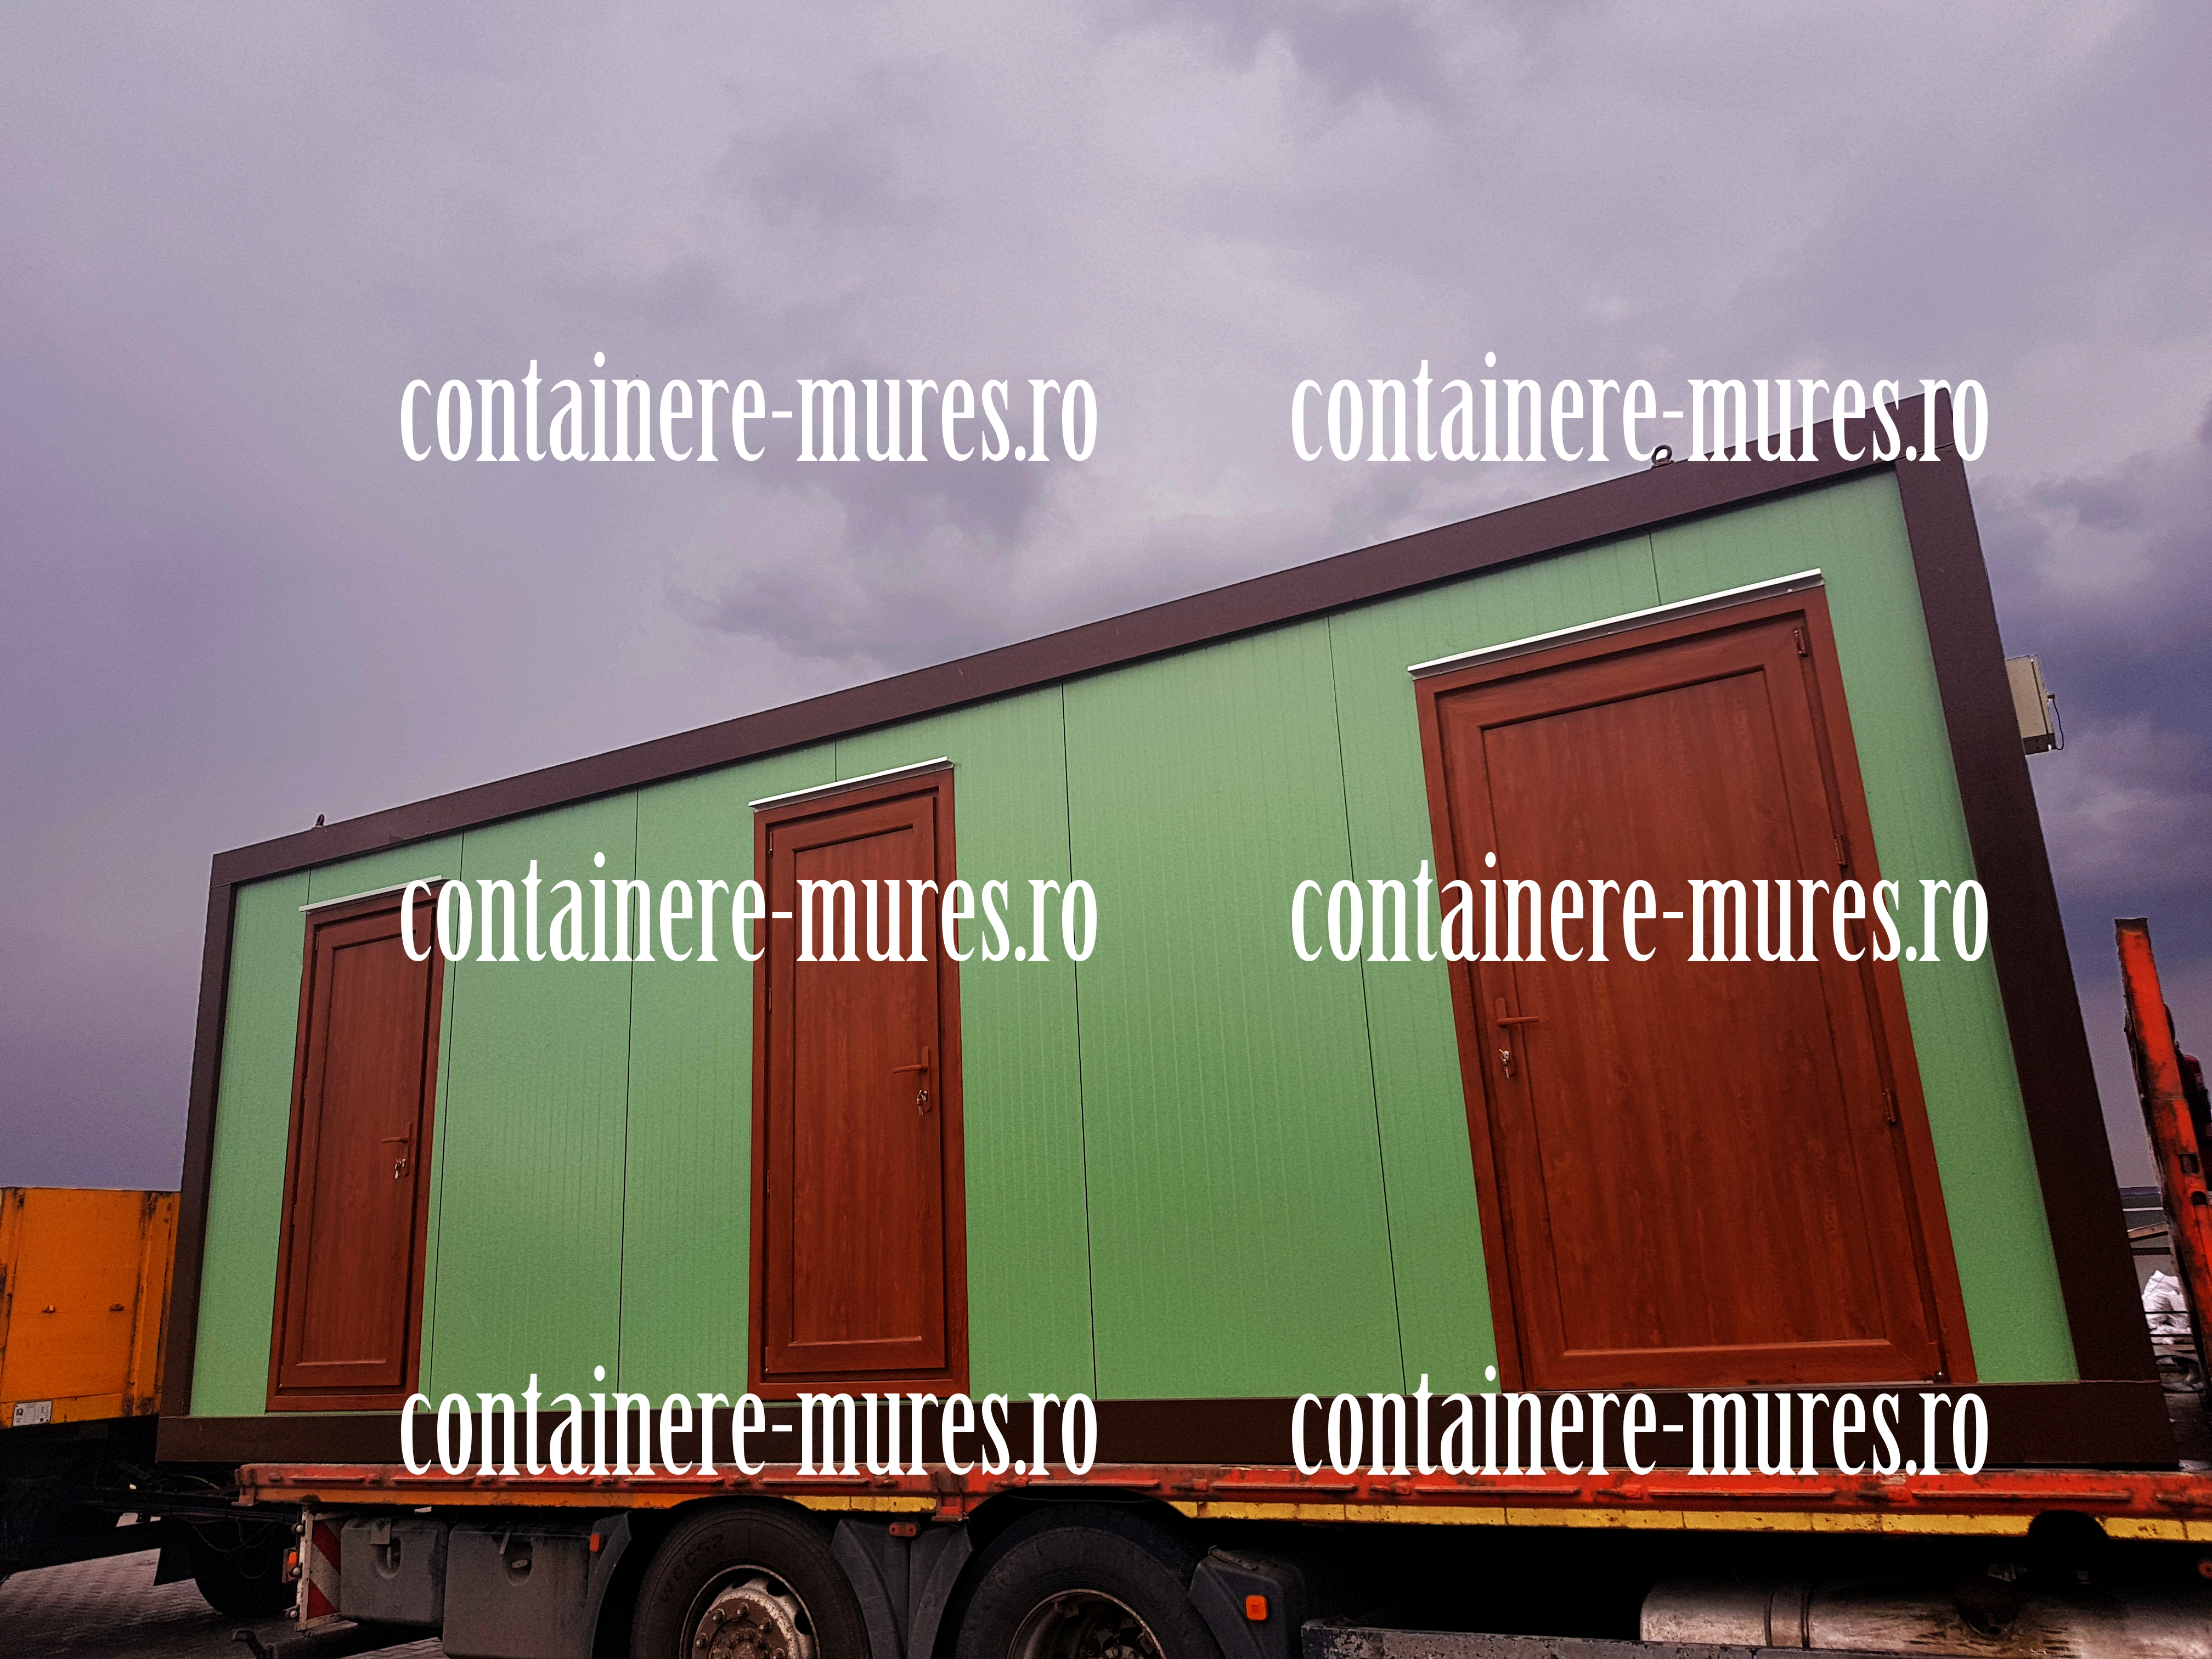 casa din containere maritime pret Mures